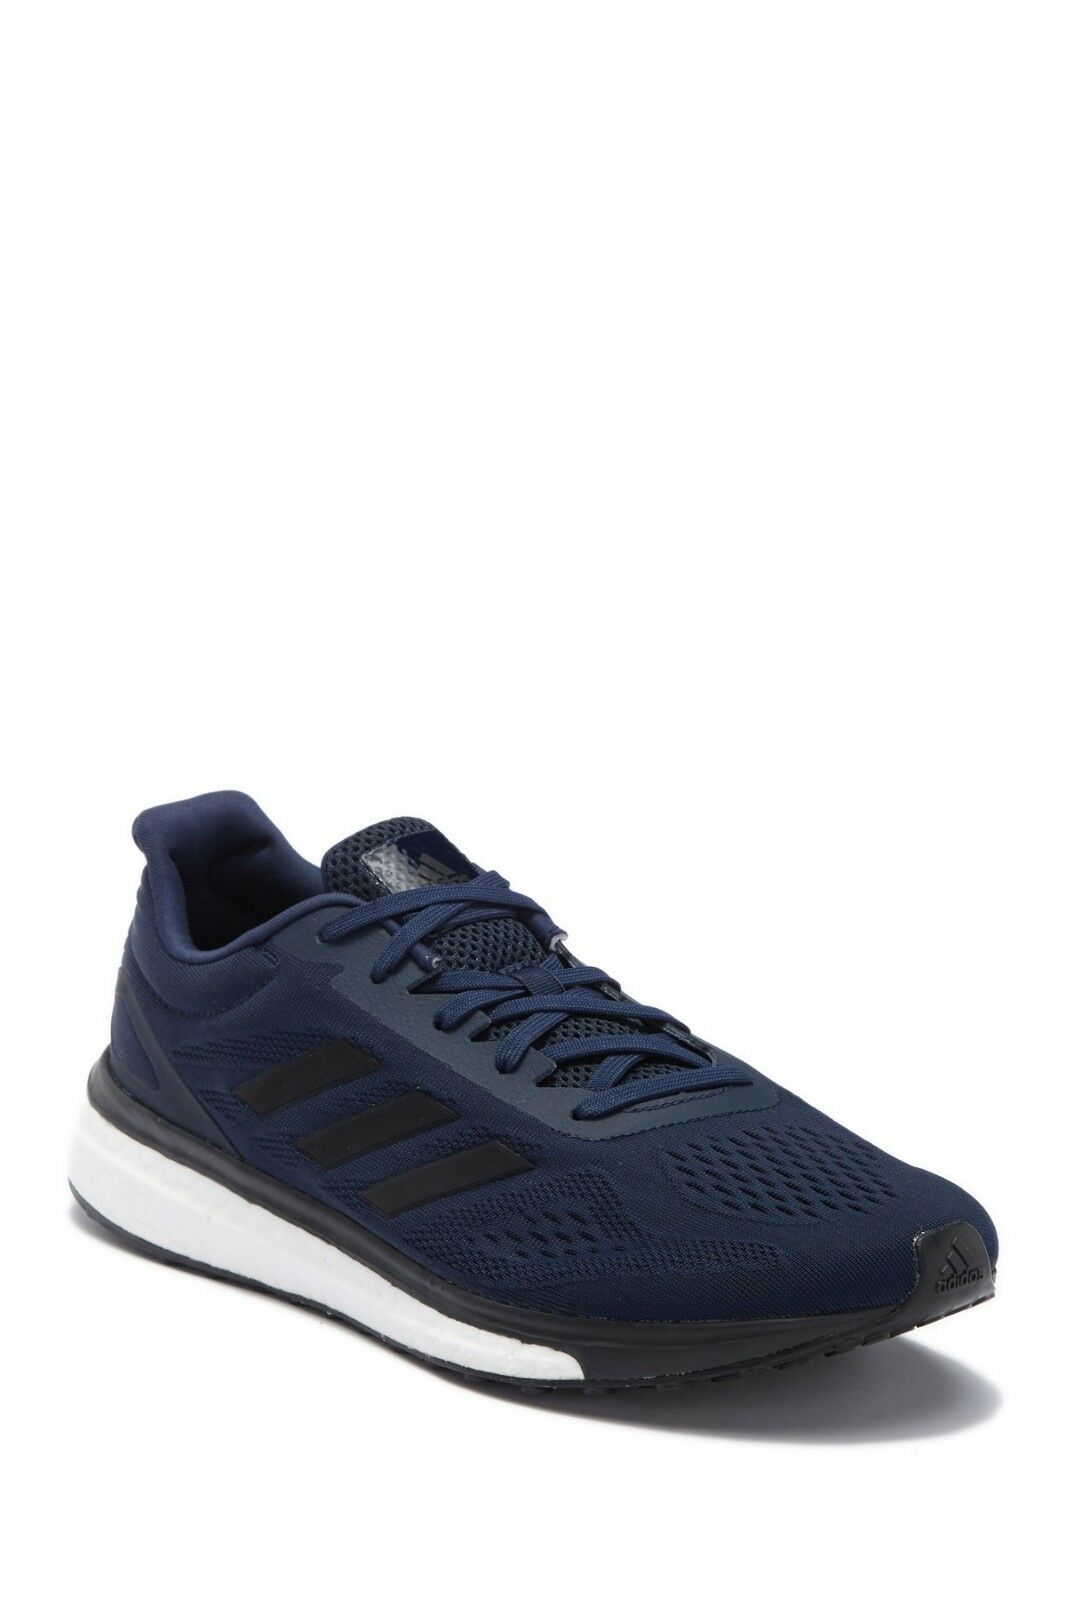 Adidas Response It Running shoes Size 13 CP9551 Navy  Black   White